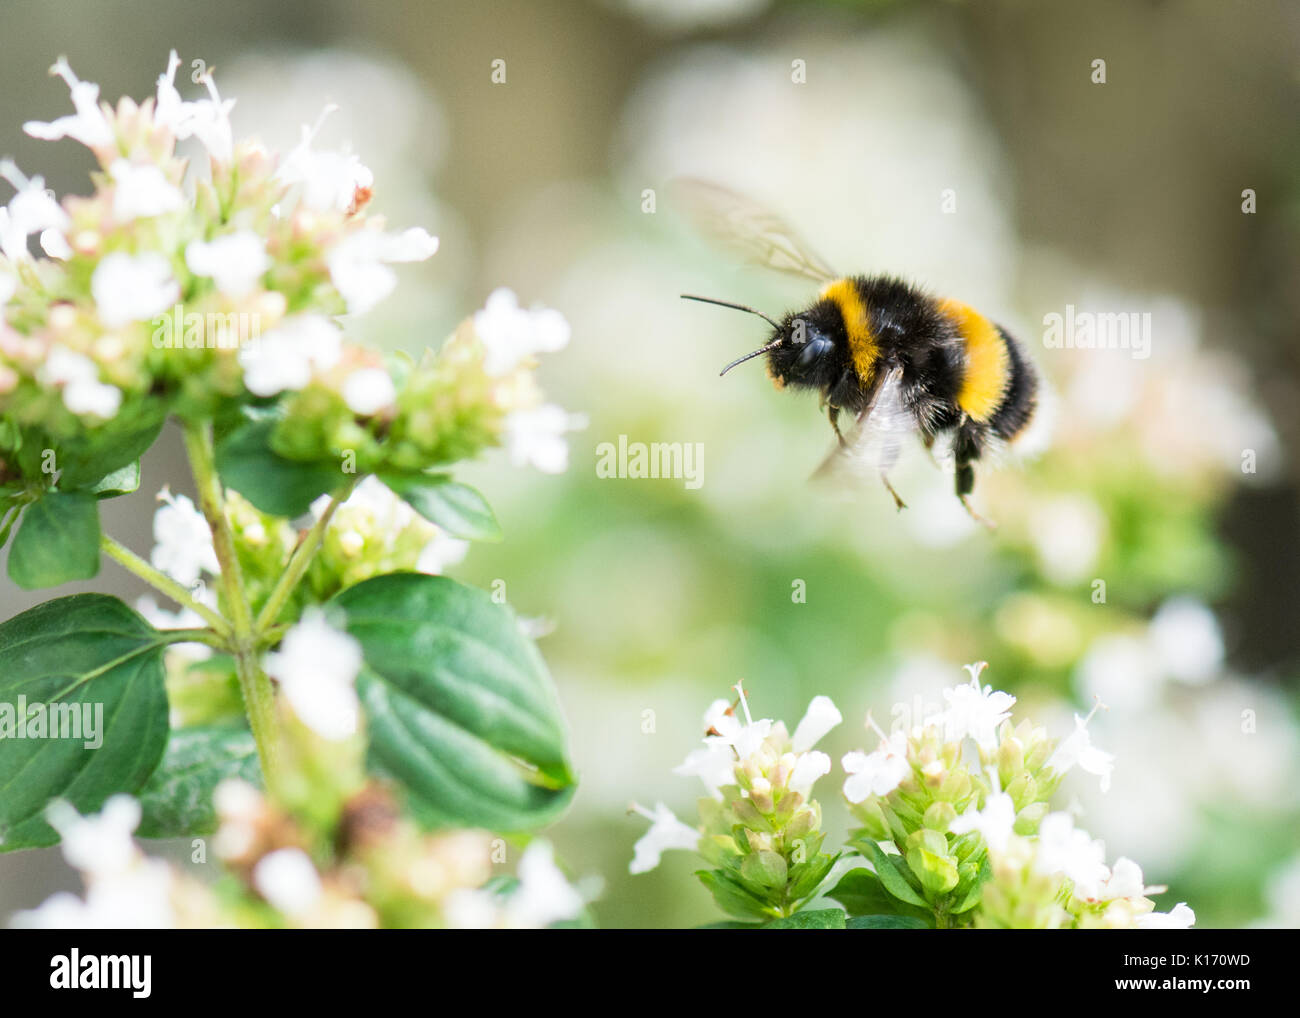 Buff tailed bumblebee - Bombus terrestris - flying towards white marjoram flowers - UK - Stock Image